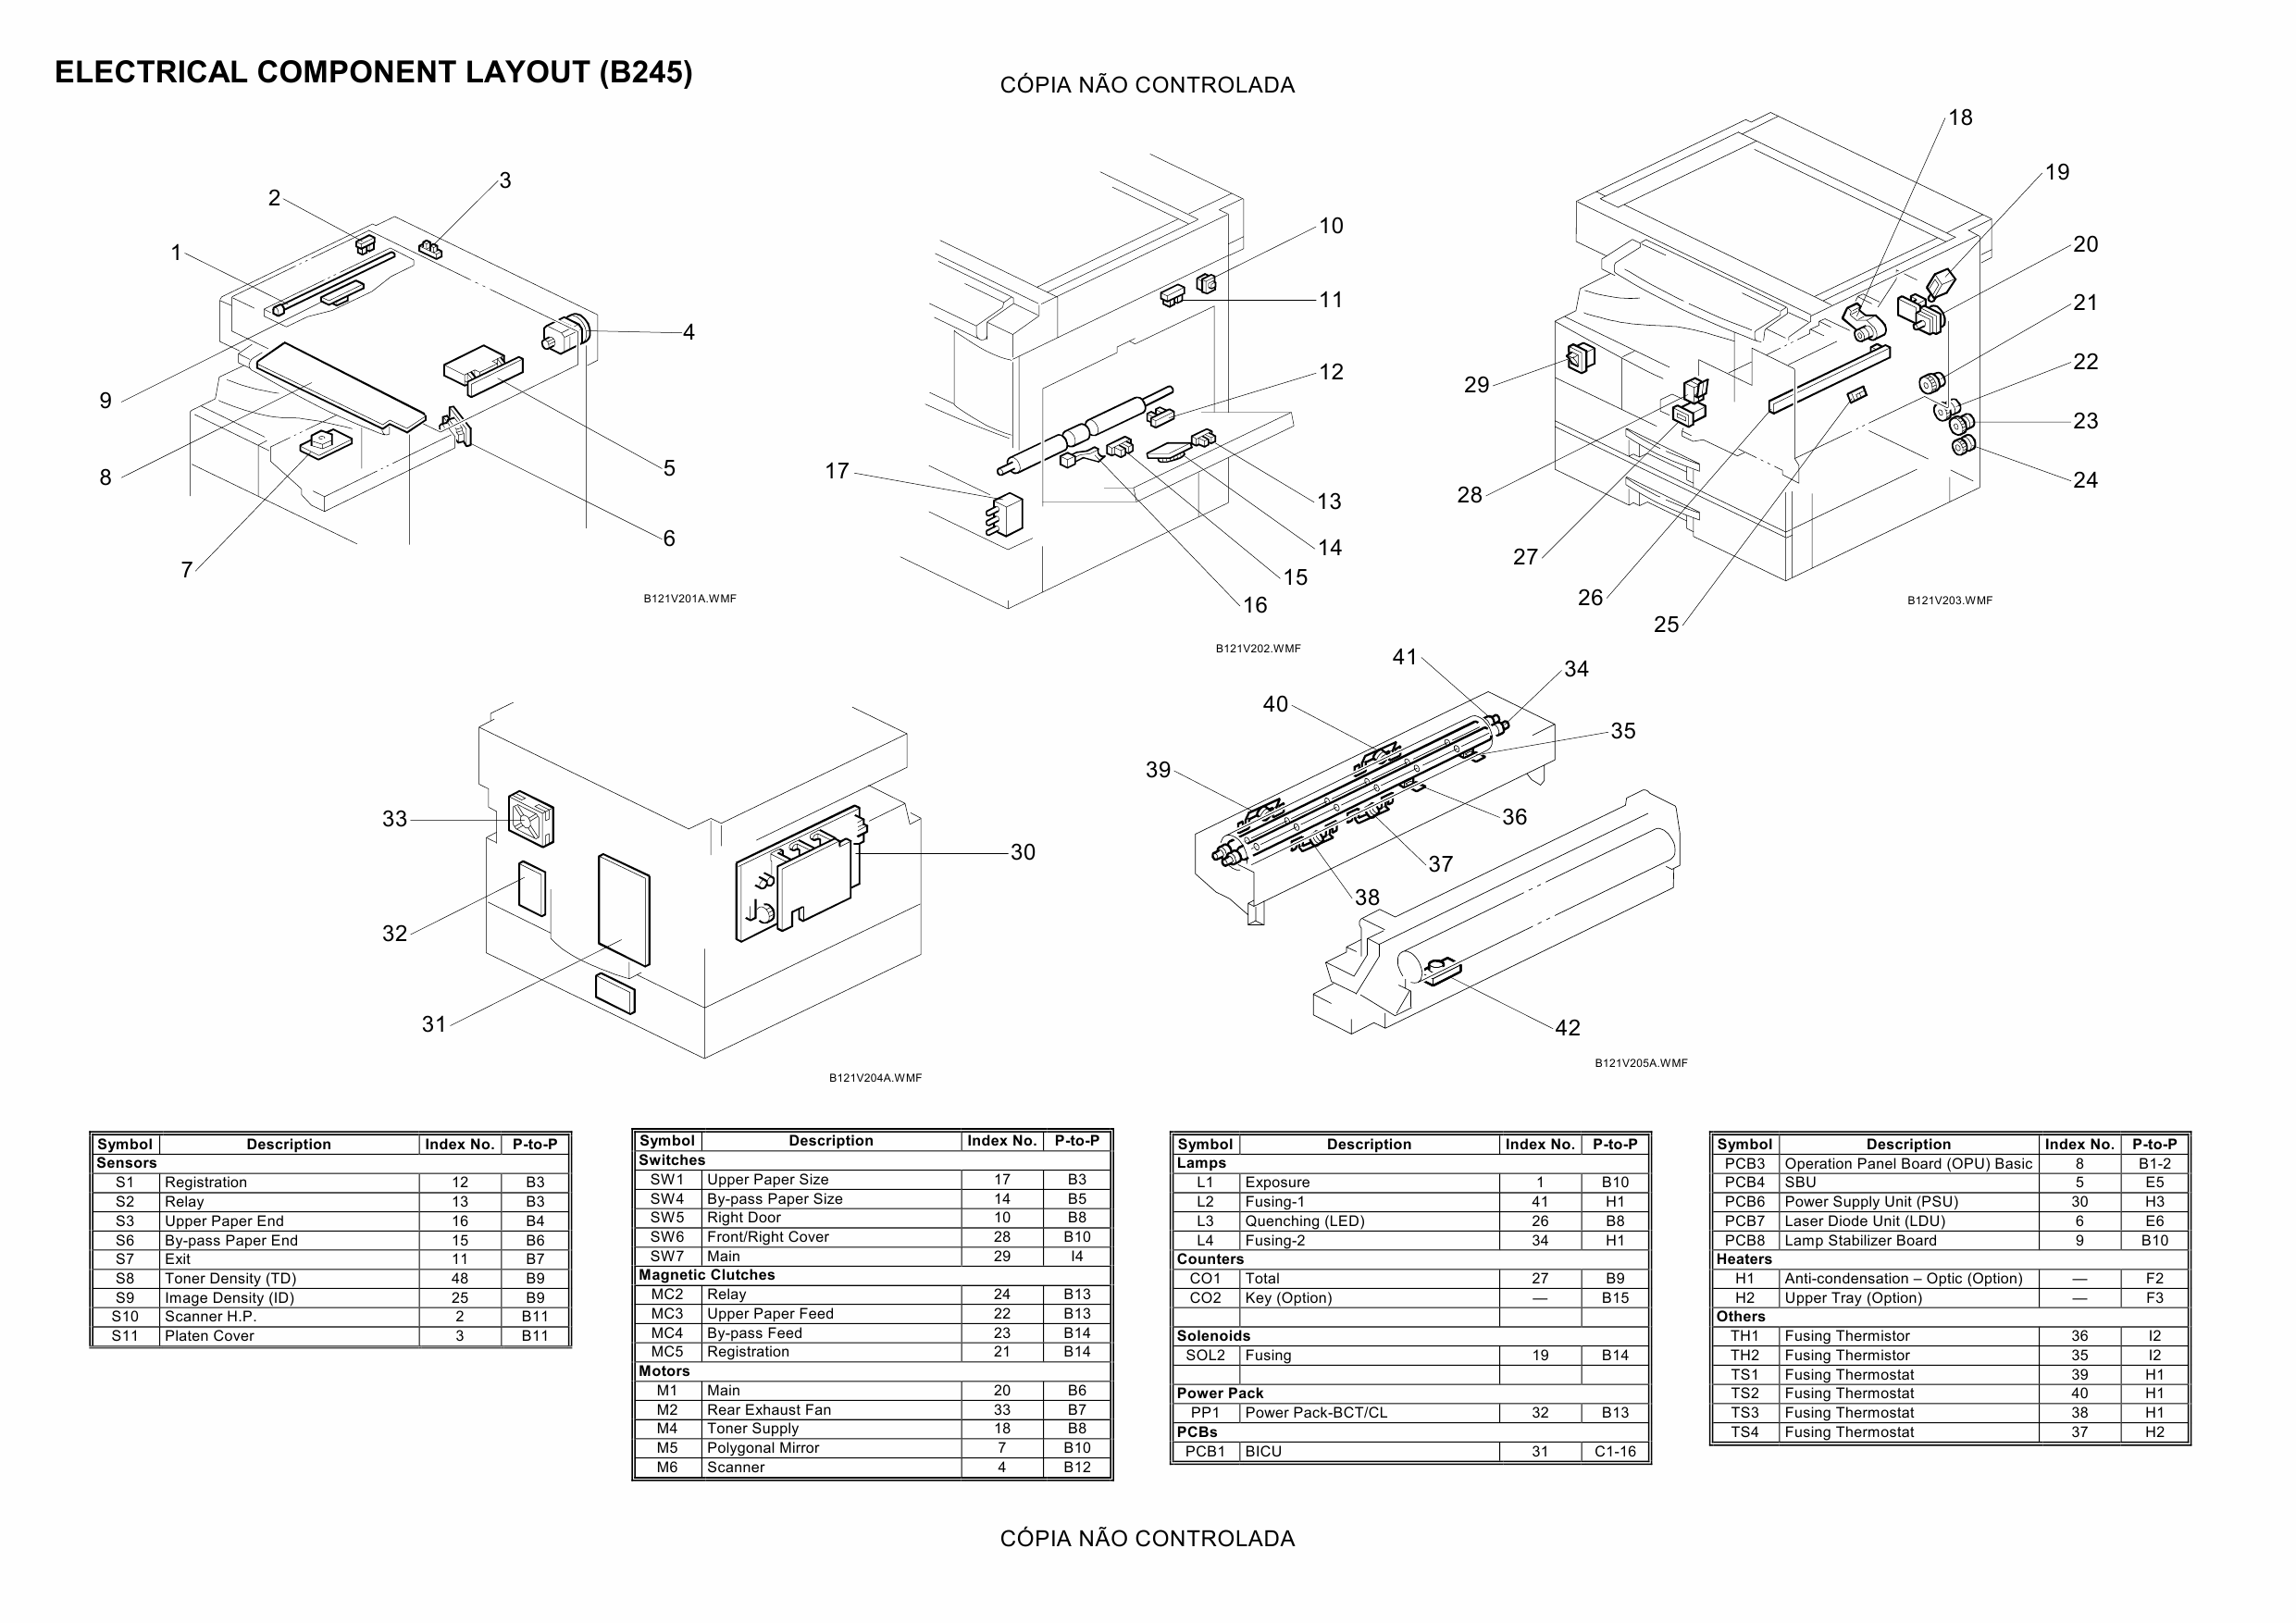 RICOH Aficio MP-1500 B245 Circuit Diagram